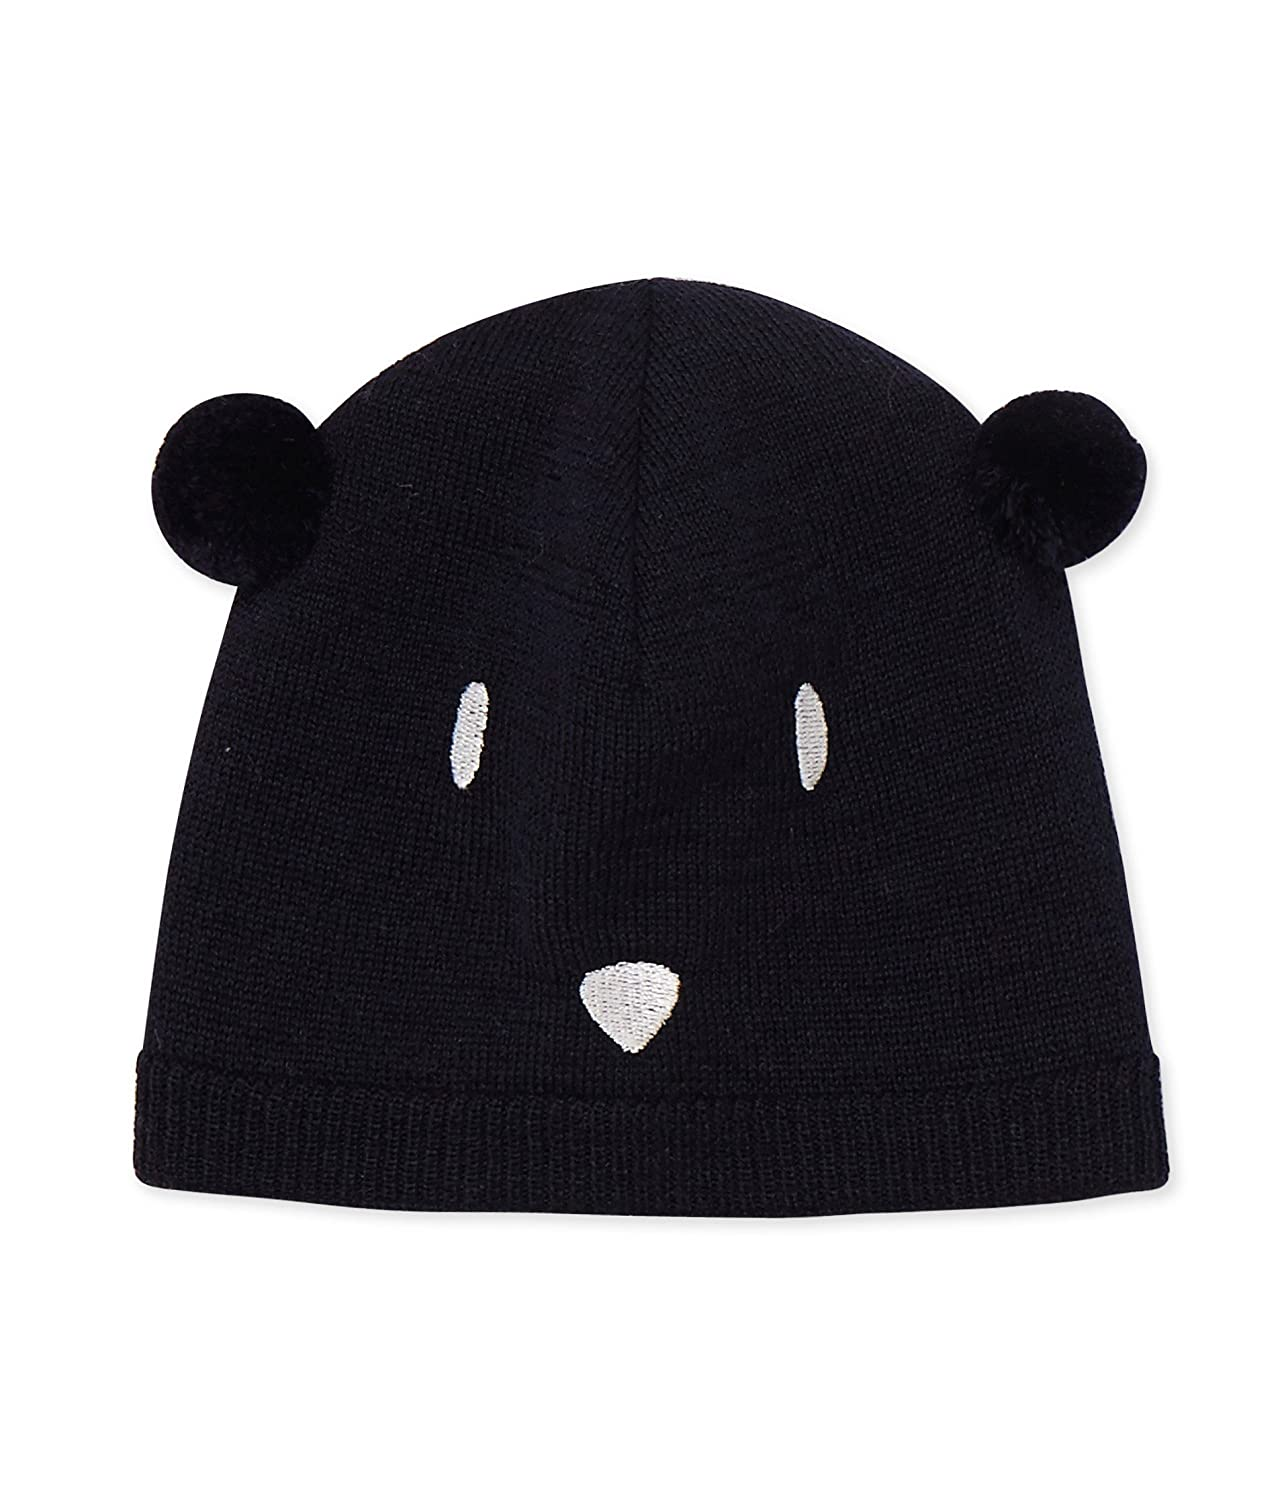 Petit Bateau Baby Lesine Hat  Amazon.co.uk  Clothing 93cb2c8cb265